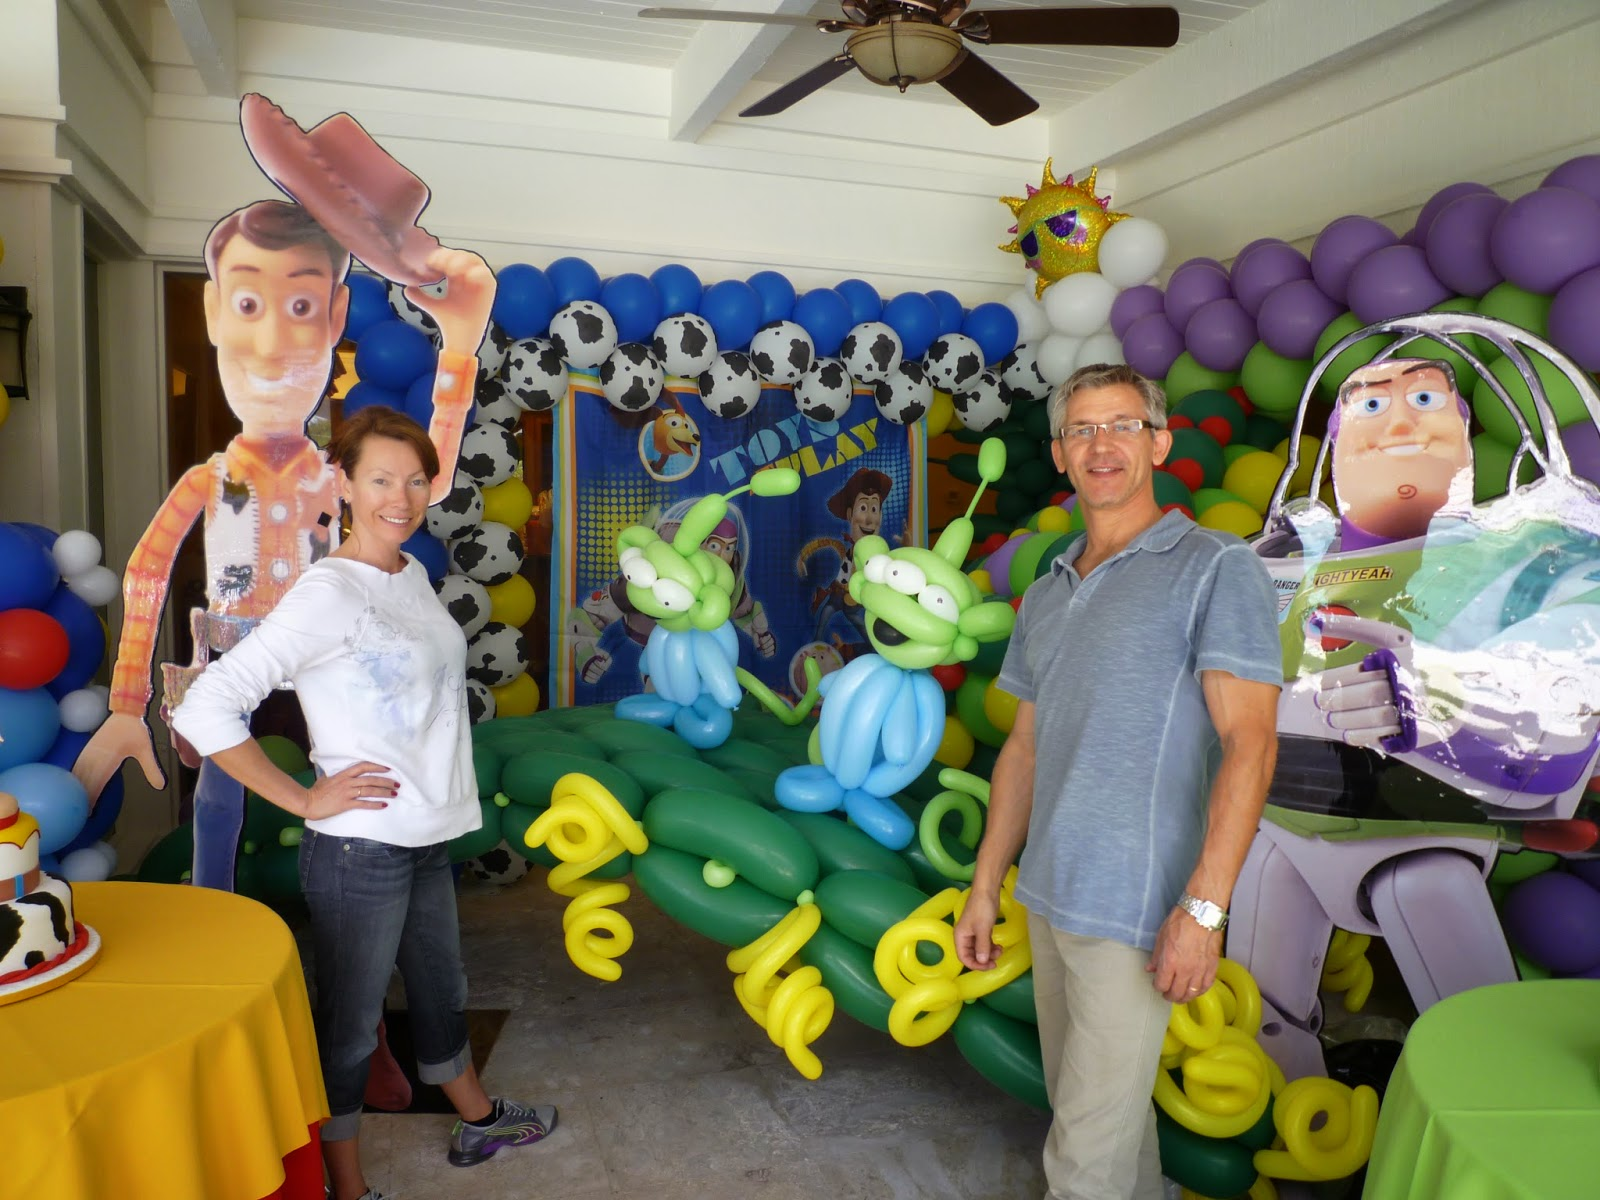 Woody, Buzz, and all the Toy Story characters!